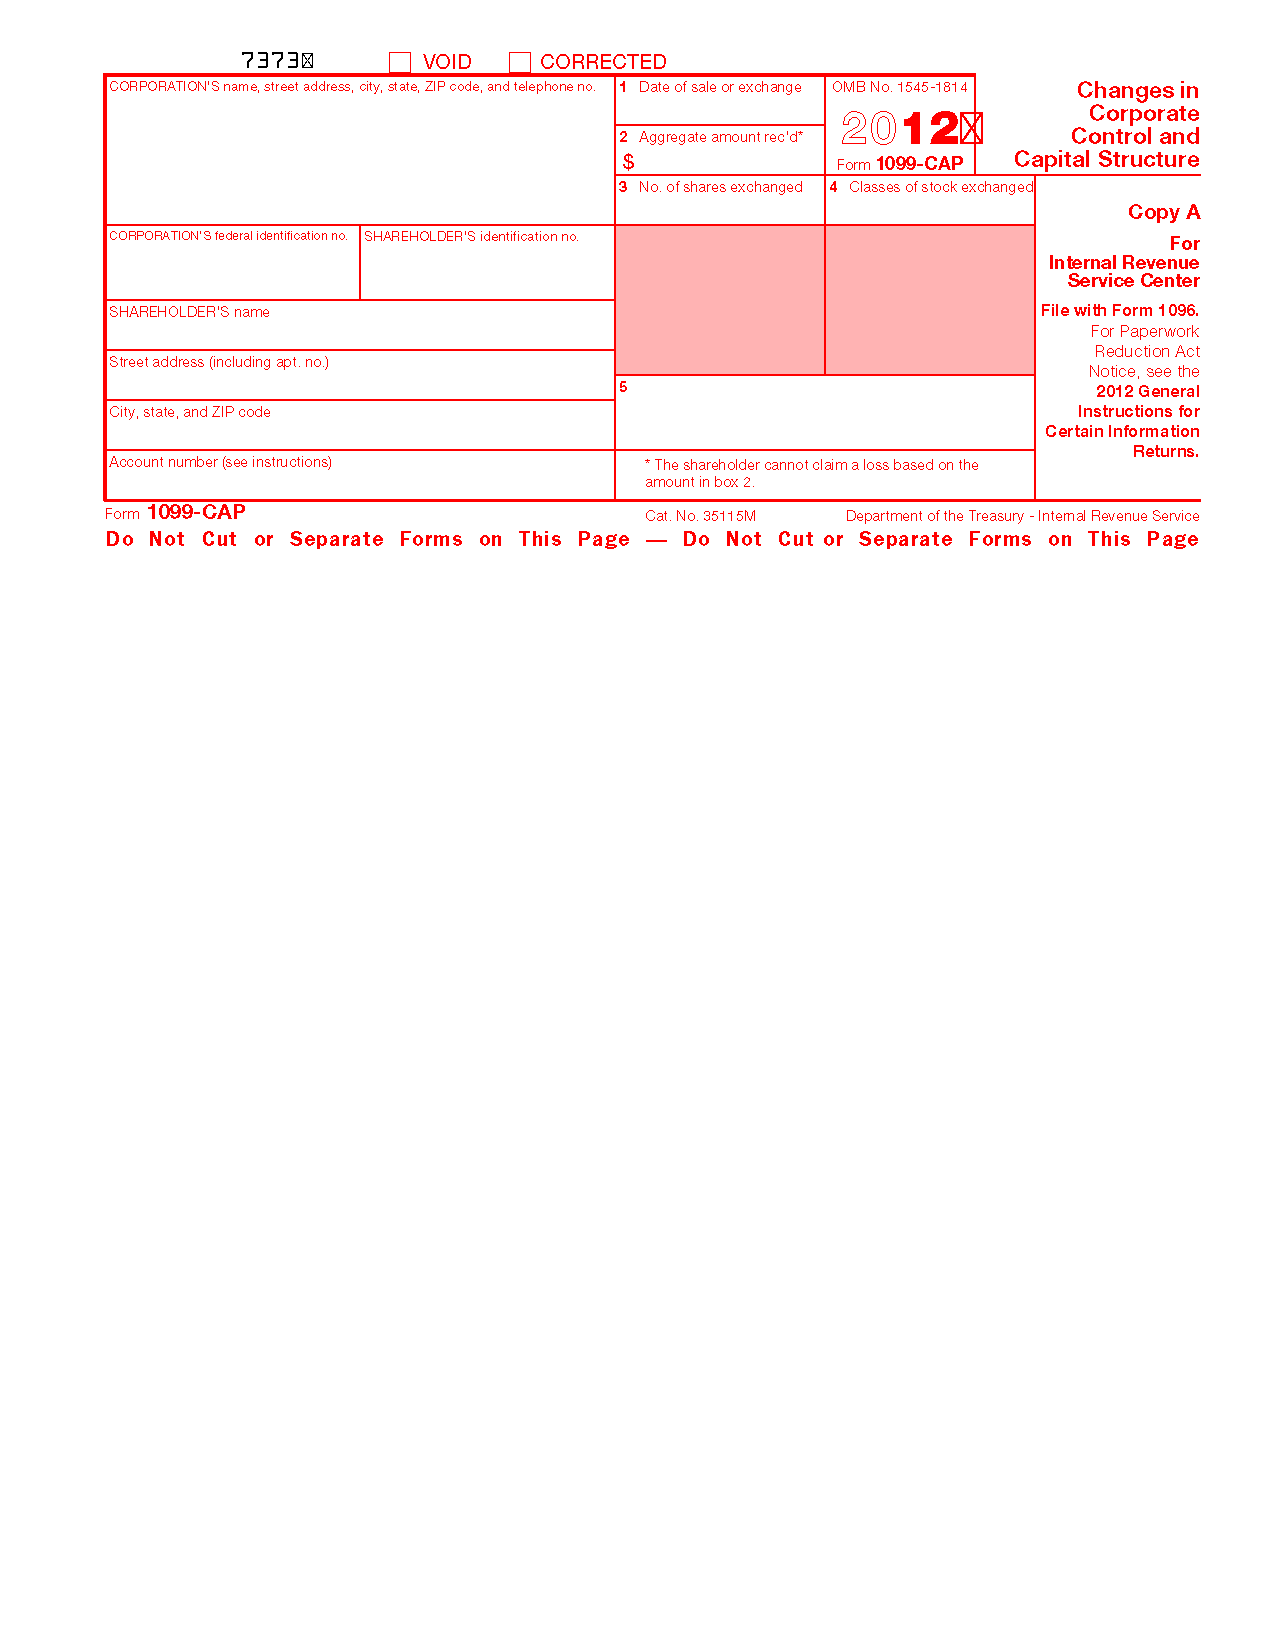 Form 1099 cap changes in corporate control and capital structure view all 2011 irs tax forms falaconquin